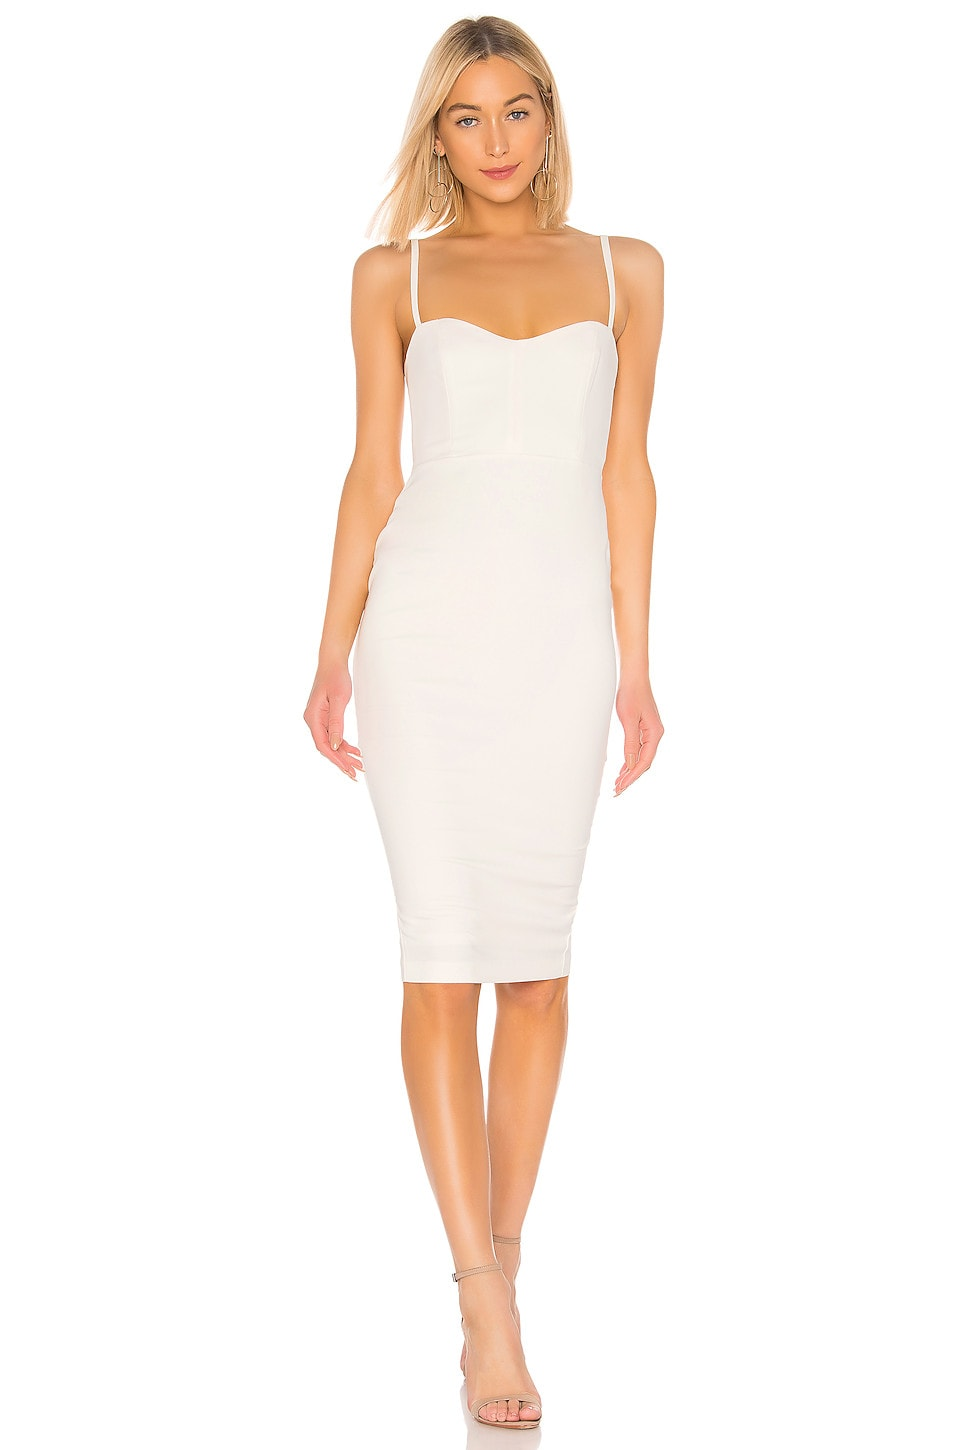 Nookie Allure Midi Dress in White